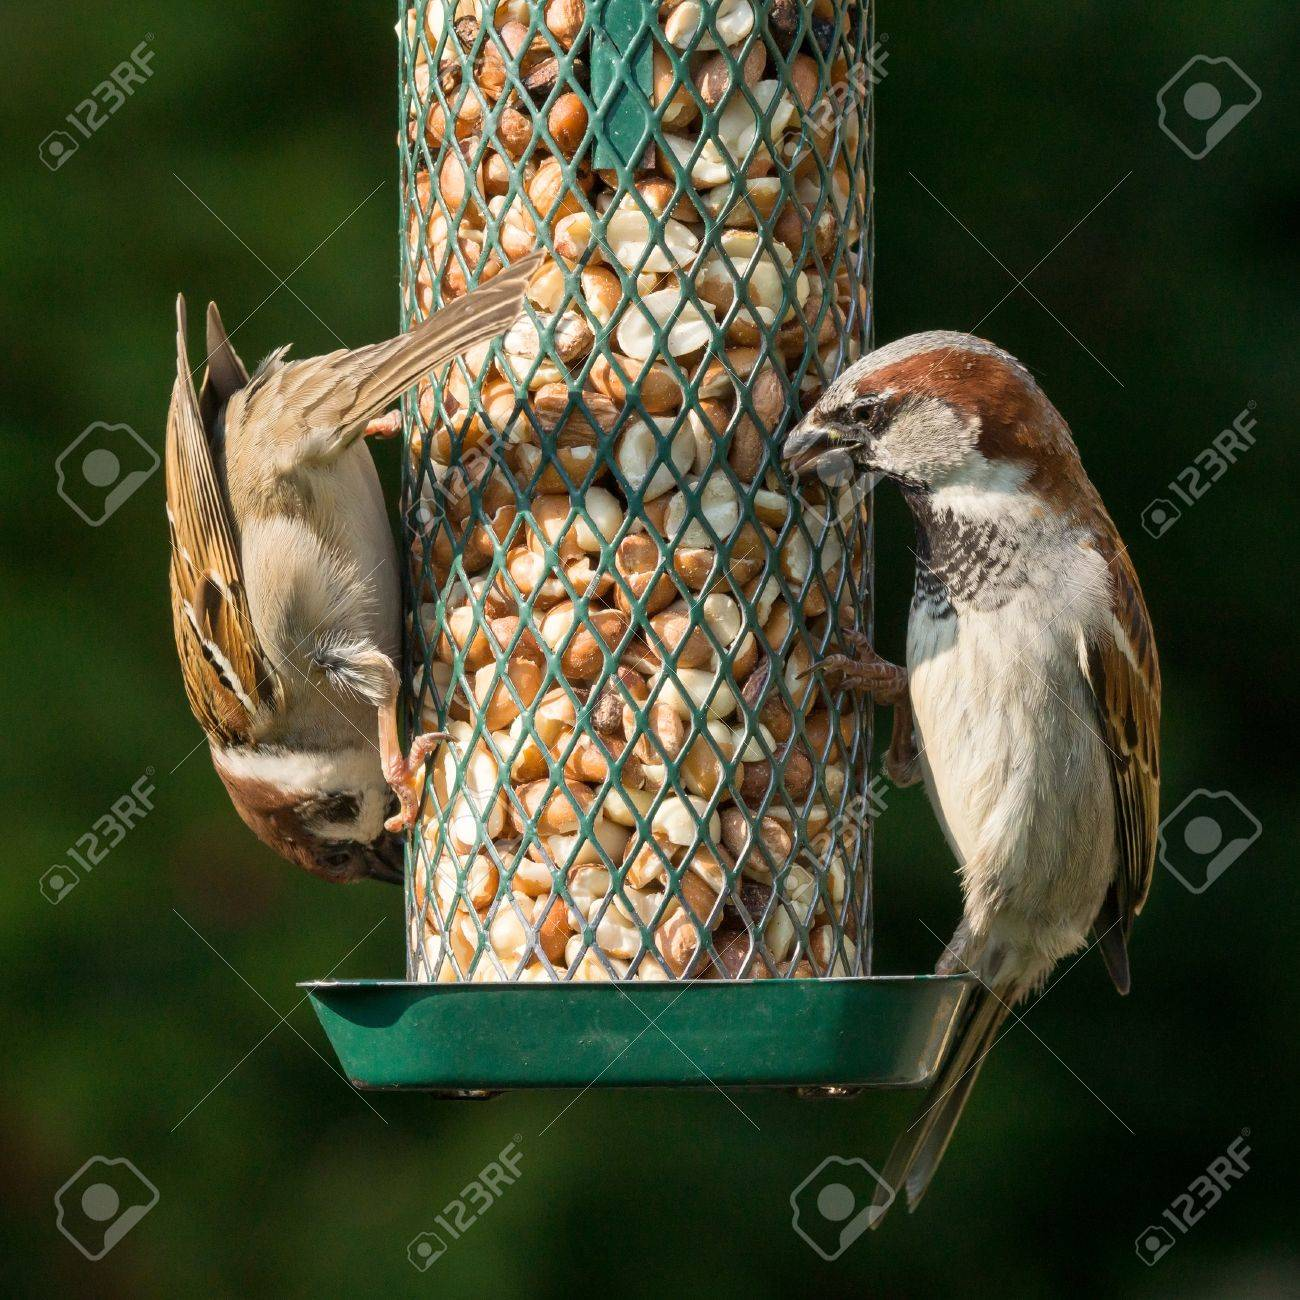 has peanut bird a castle chennai plans full outstanding philippines image in beautiful drogo houses sale seed feeder for